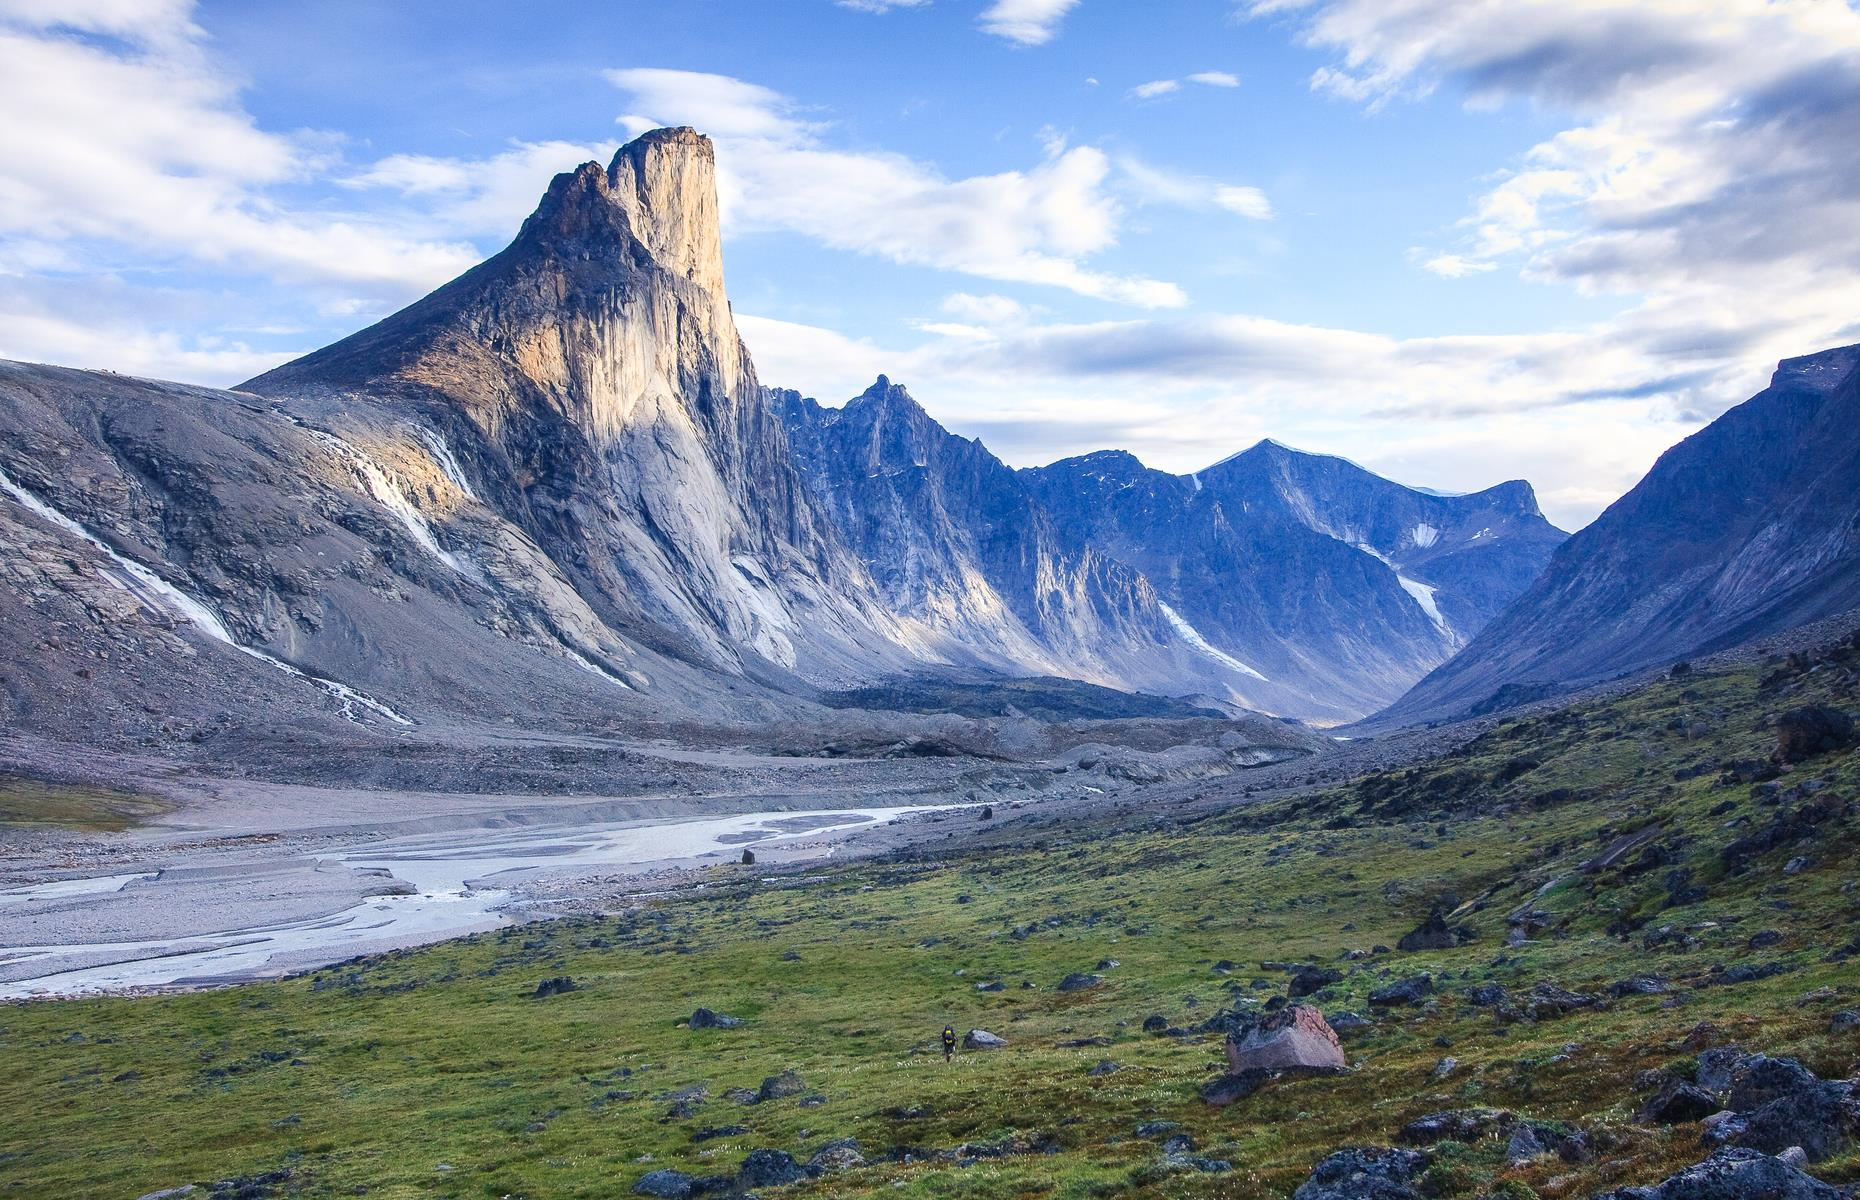 Slide 9 of 31: Located within the remote Auyuittuq National Park, Mount Thor (officially known as Thor Peak) is named after the Norse god of thunder and for very good reason as it's so intimidating. Featuring the world's longest vertical drop at a hair-raising 4,101 feet (1,250m), the slope isn't easily ascended either. In fact, it's so difficult, the mountain wasn't conquered until as recently as 1985, when a four-man American team completed it in 33 grueling days.